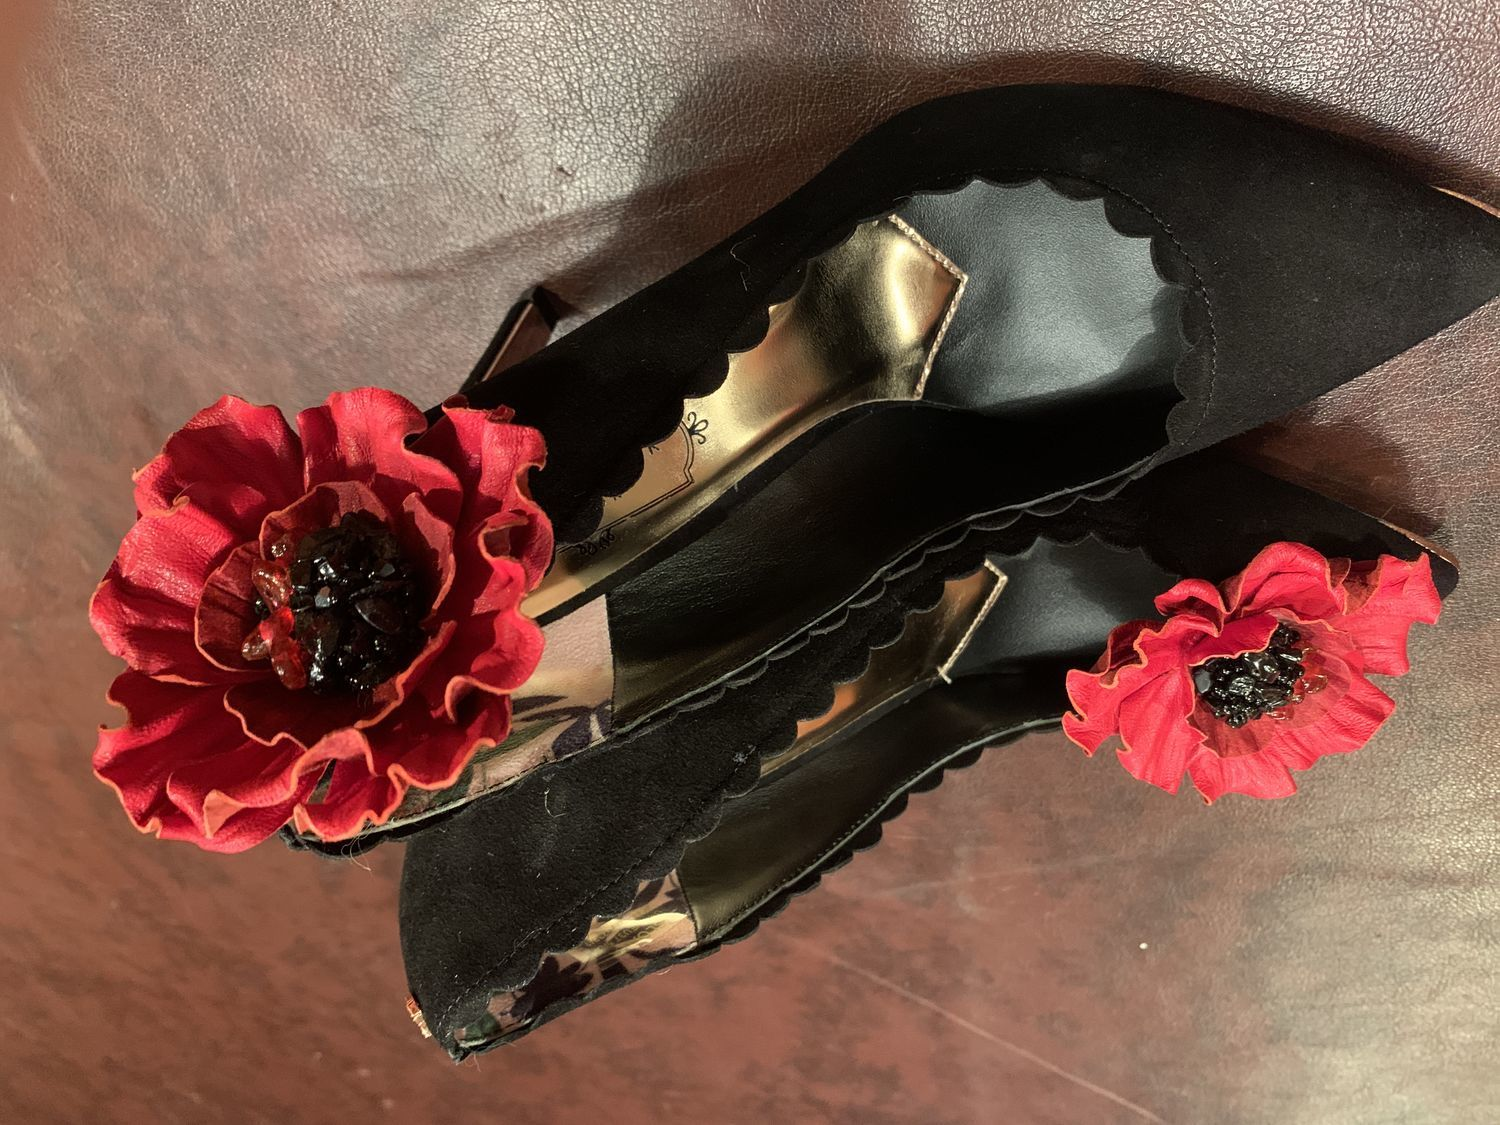 Photo №1 к отзыву покупателя Oksana Kasella о товаре Leather flowers. Decoration brooches for shoes RED CAMELLIA and 1 more item